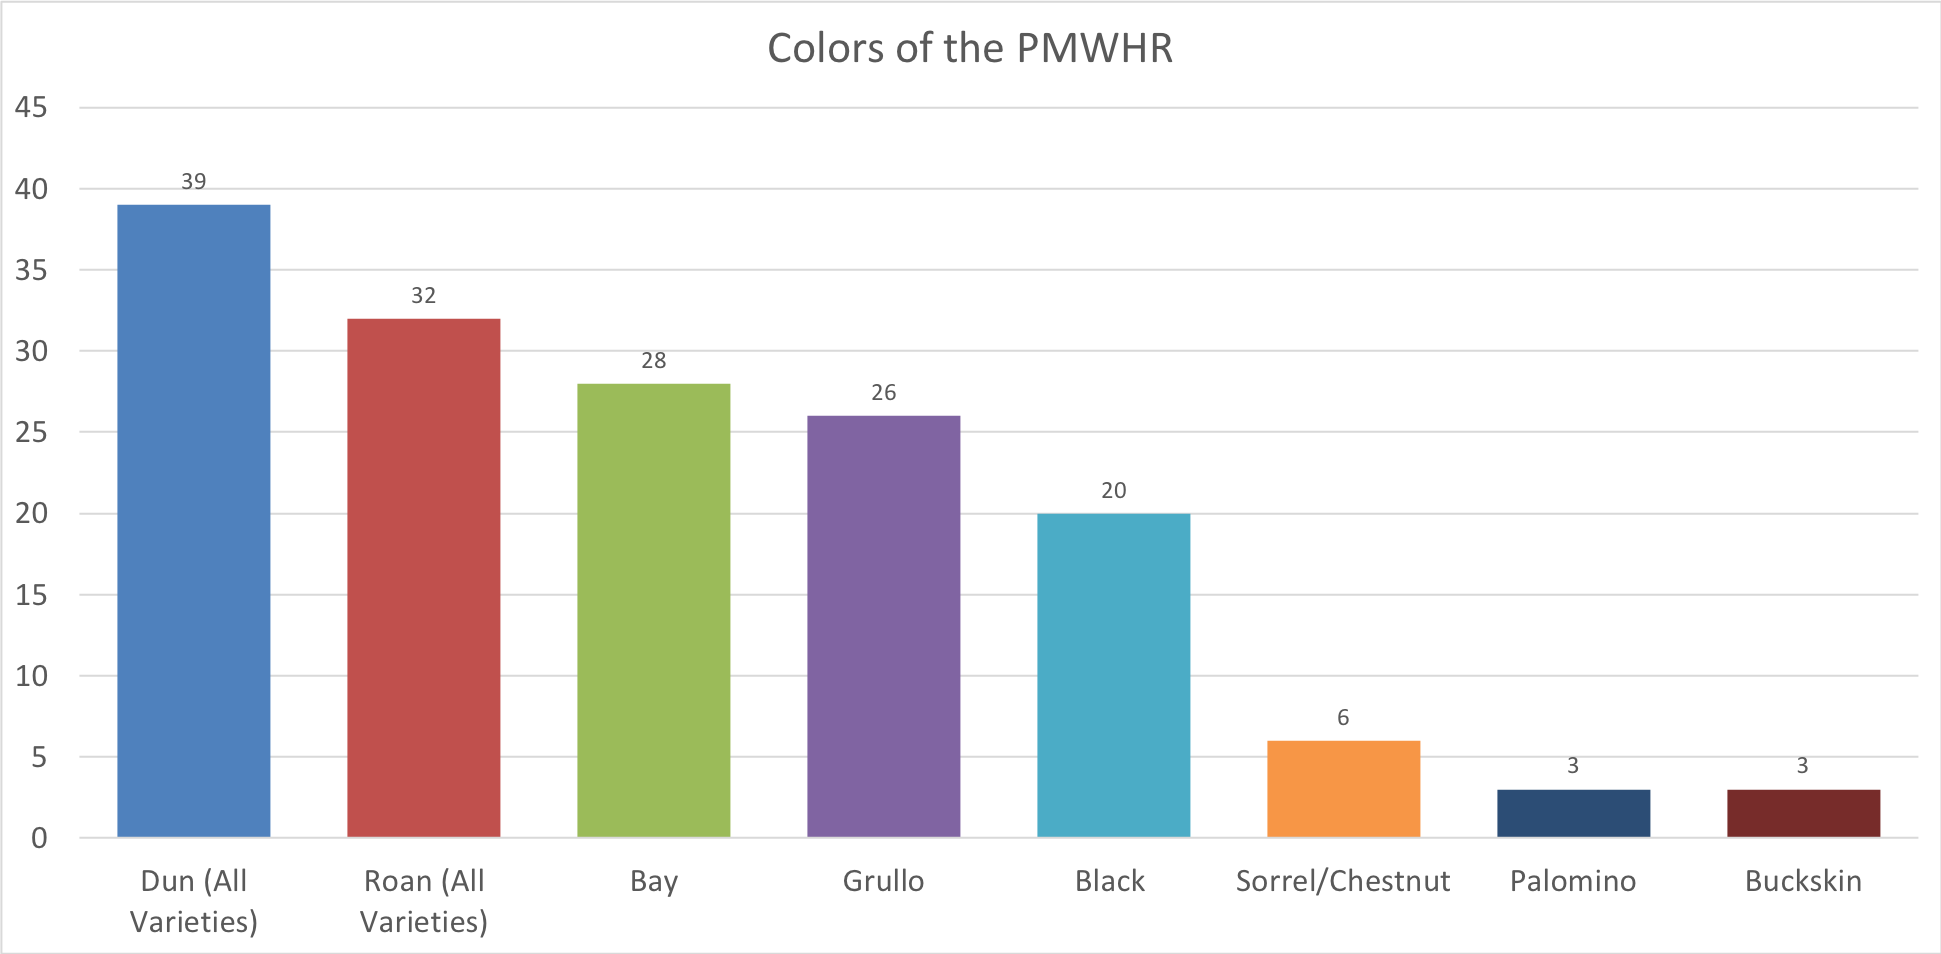 All data represented above was gathered by TCF representatives through in-person visits to the PMWHR.Dun varieties include coyote, red, and apricot duns. Roan varieties include bay, blue, buckskin, dun, grullo, chestnut, and red roans.